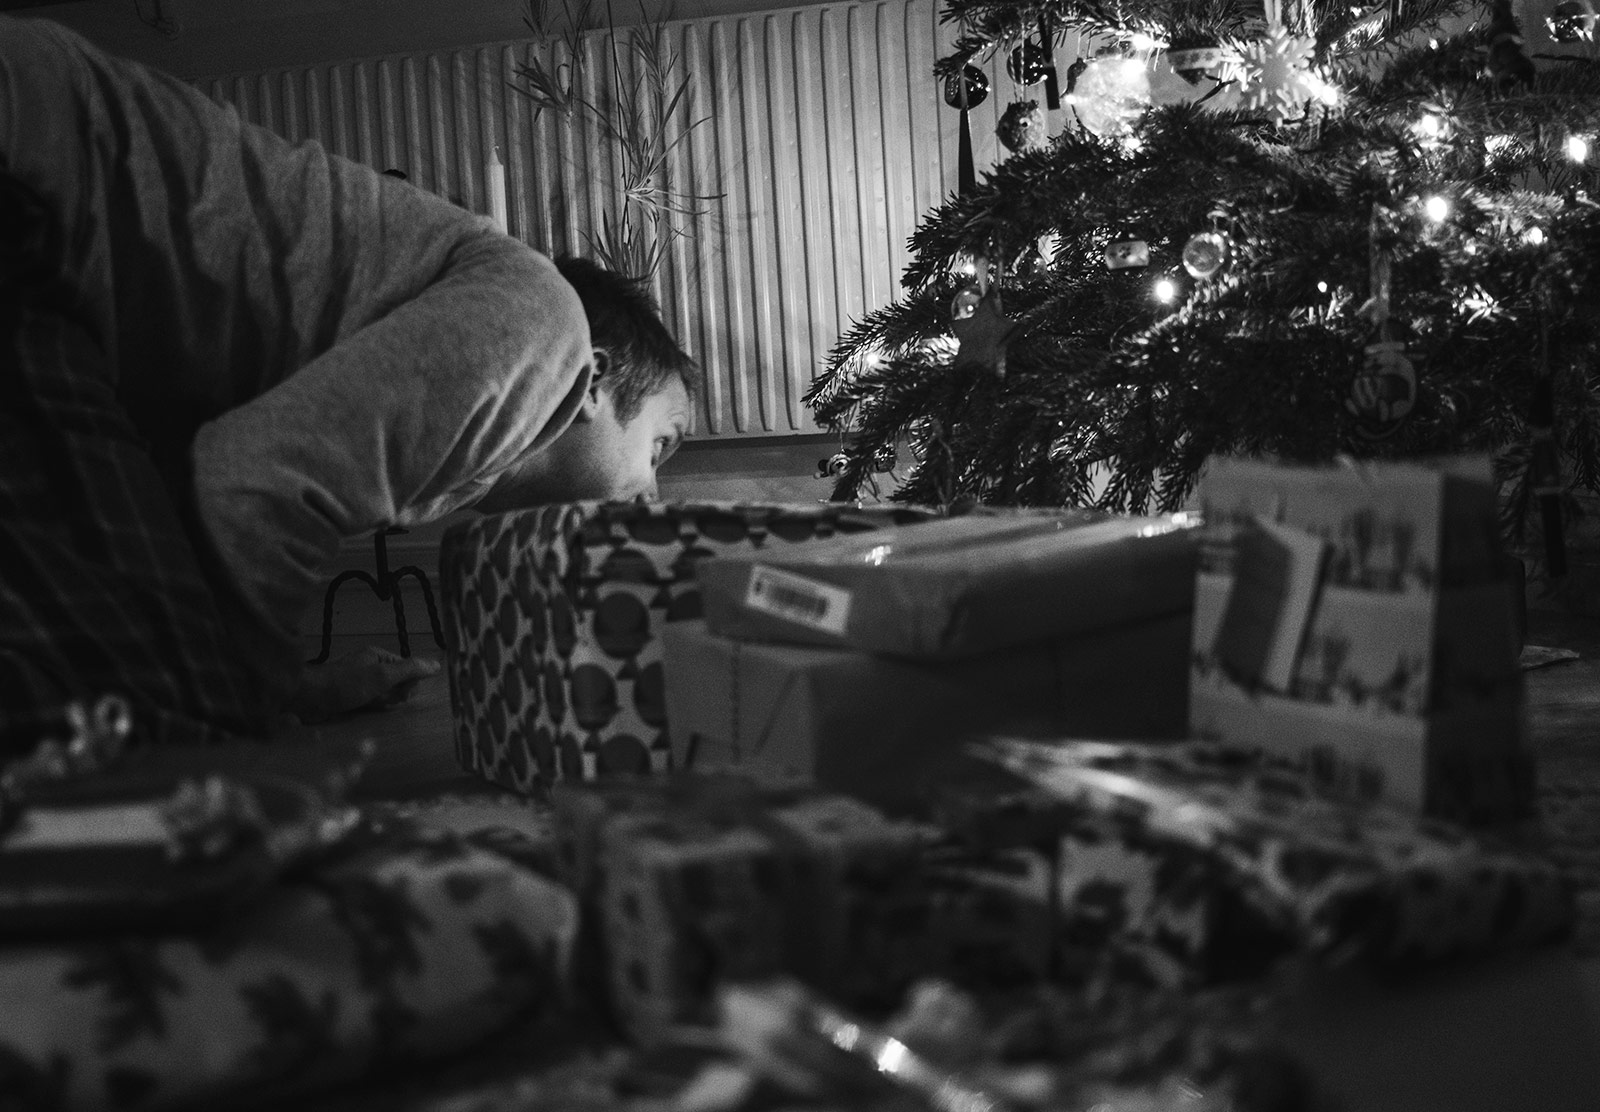 Man peering under Christmas tree